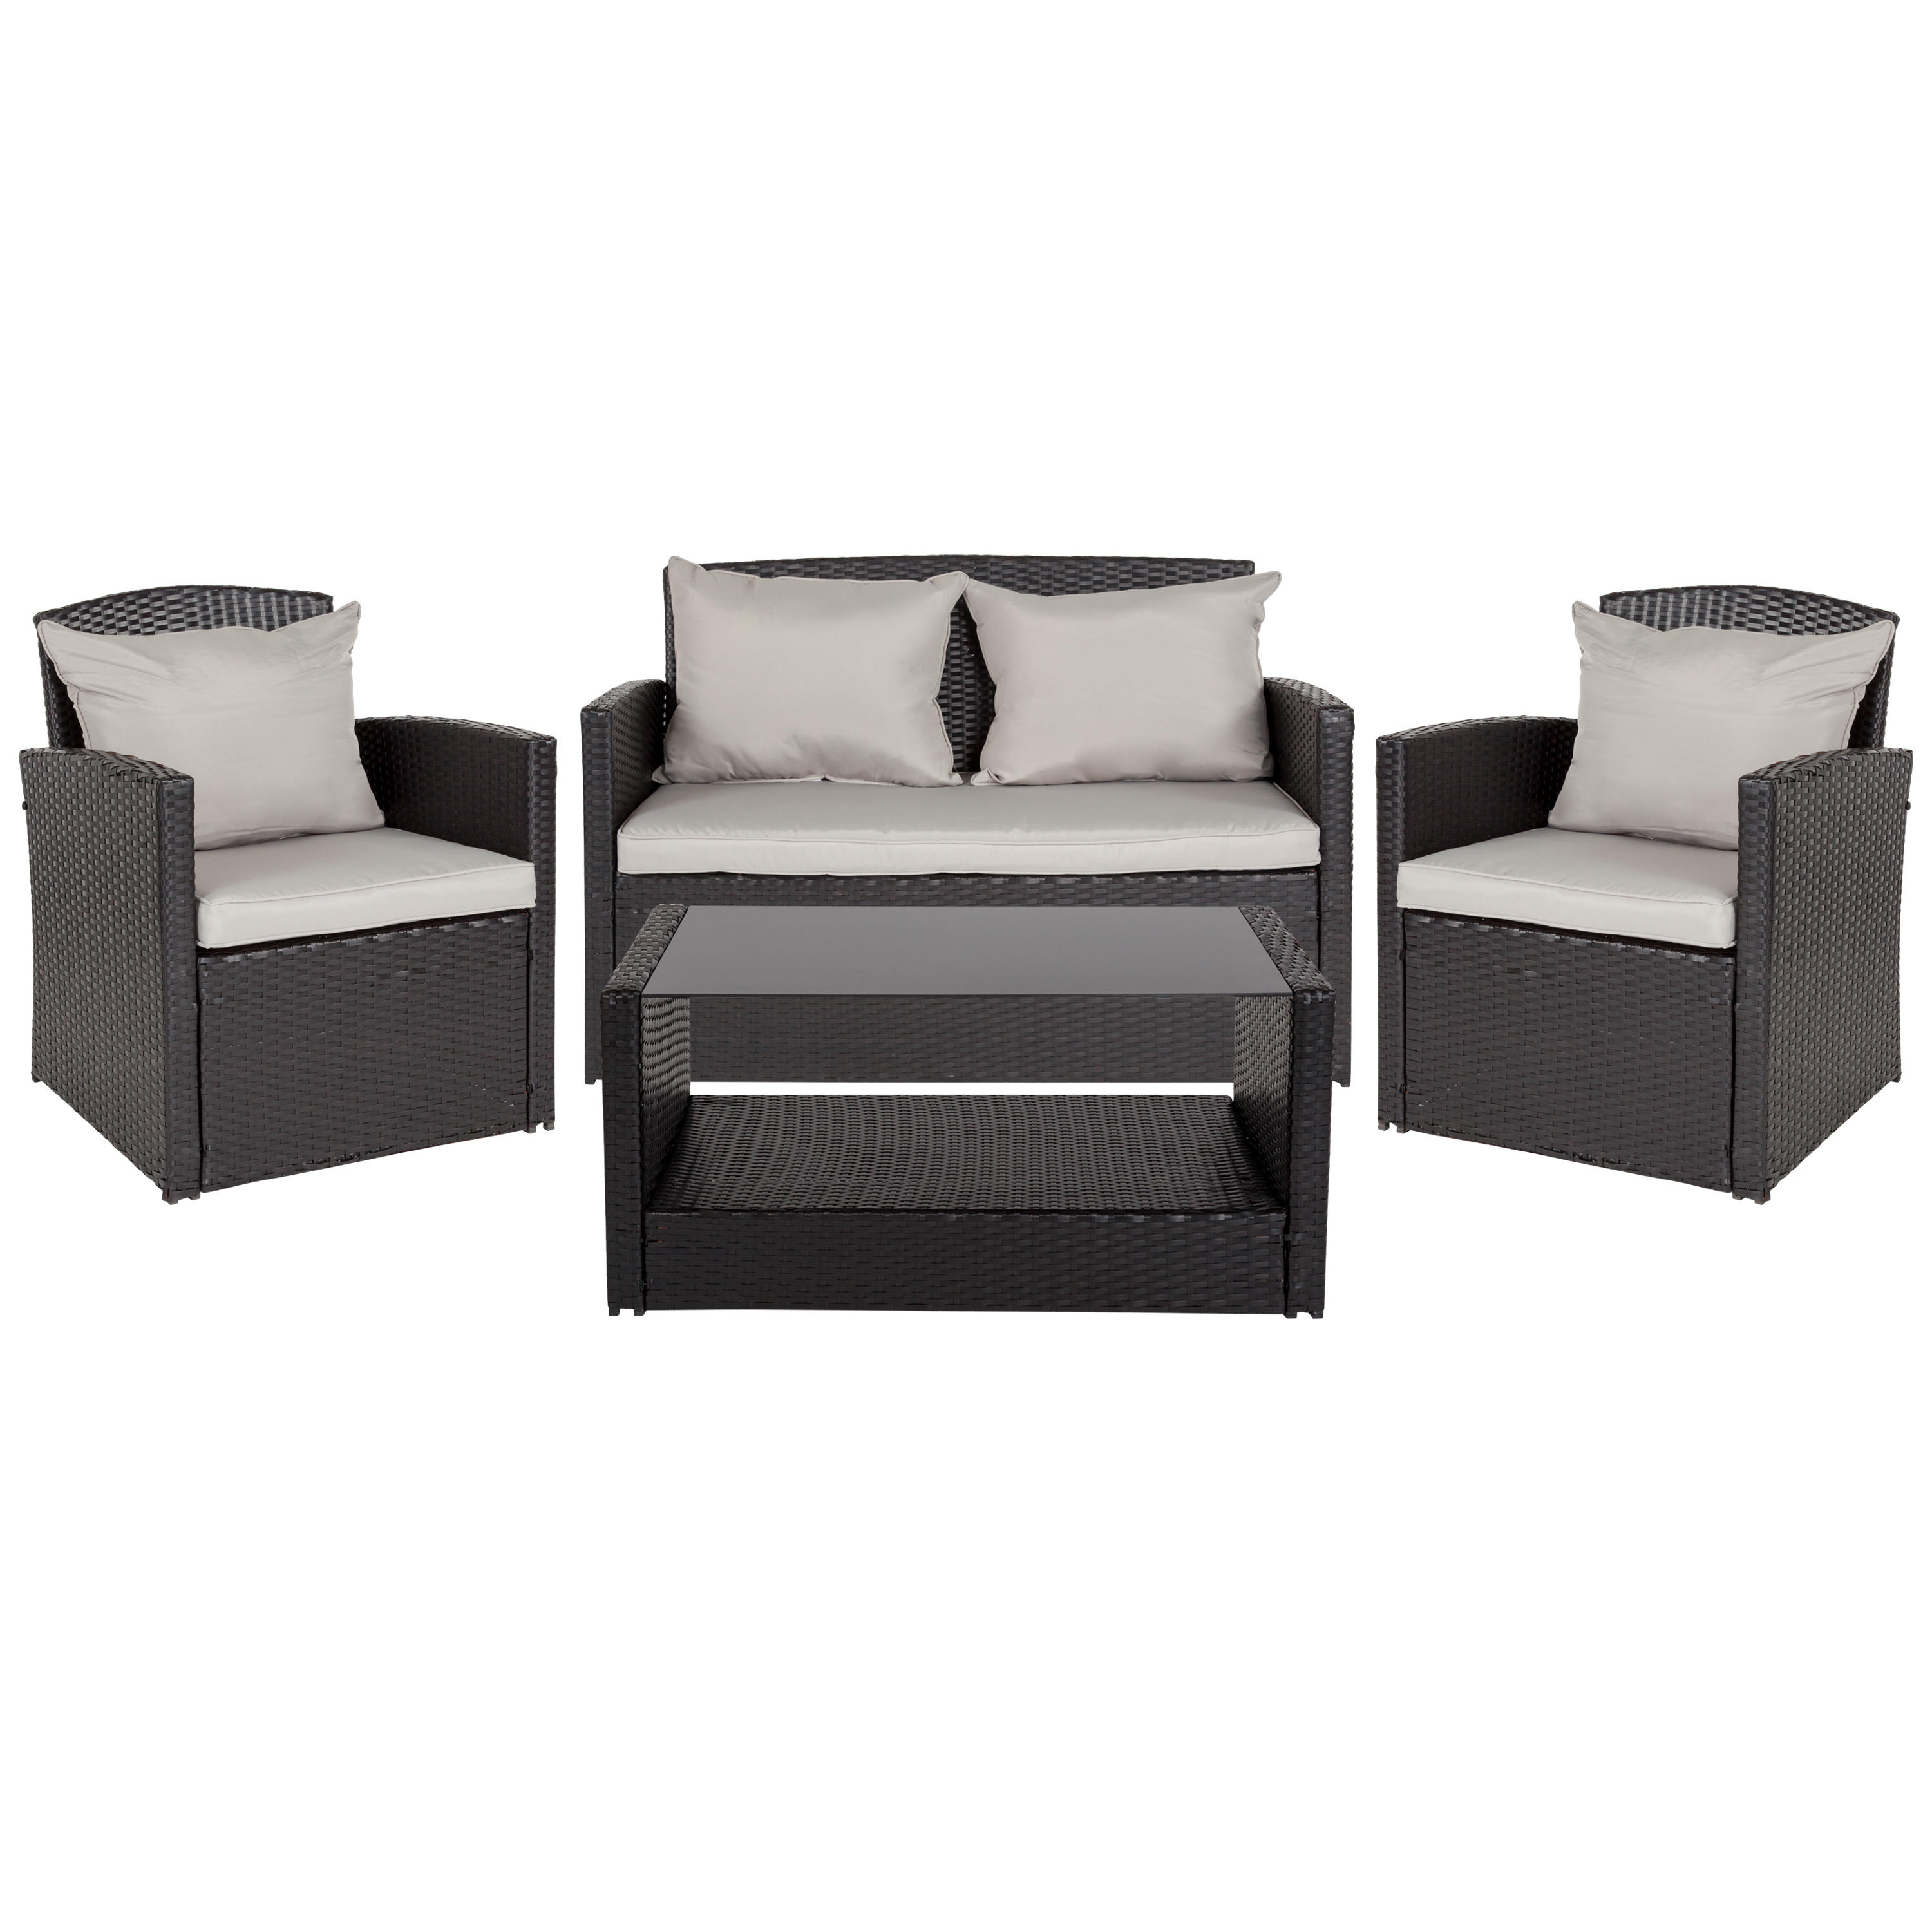 Groovy Flash Furniture Aransas Series 4 Piece Black Patio Set With Gray Back Pillows And Seat Cushions Download Free Architecture Designs Grimeyleaguecom